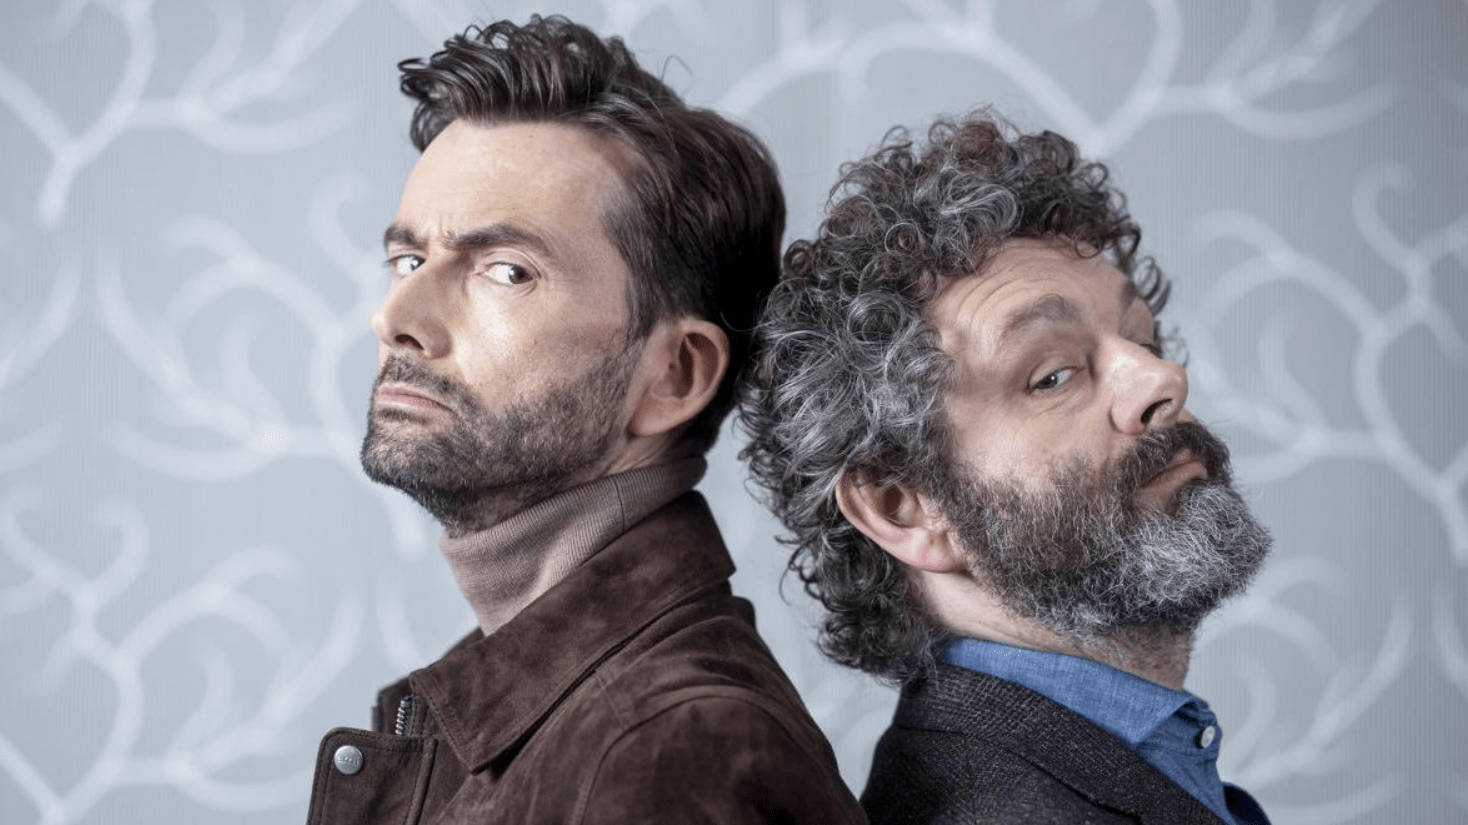 David Tennant and Michael Sheen Reunite for Good Omens & Lockdown Comedy Series